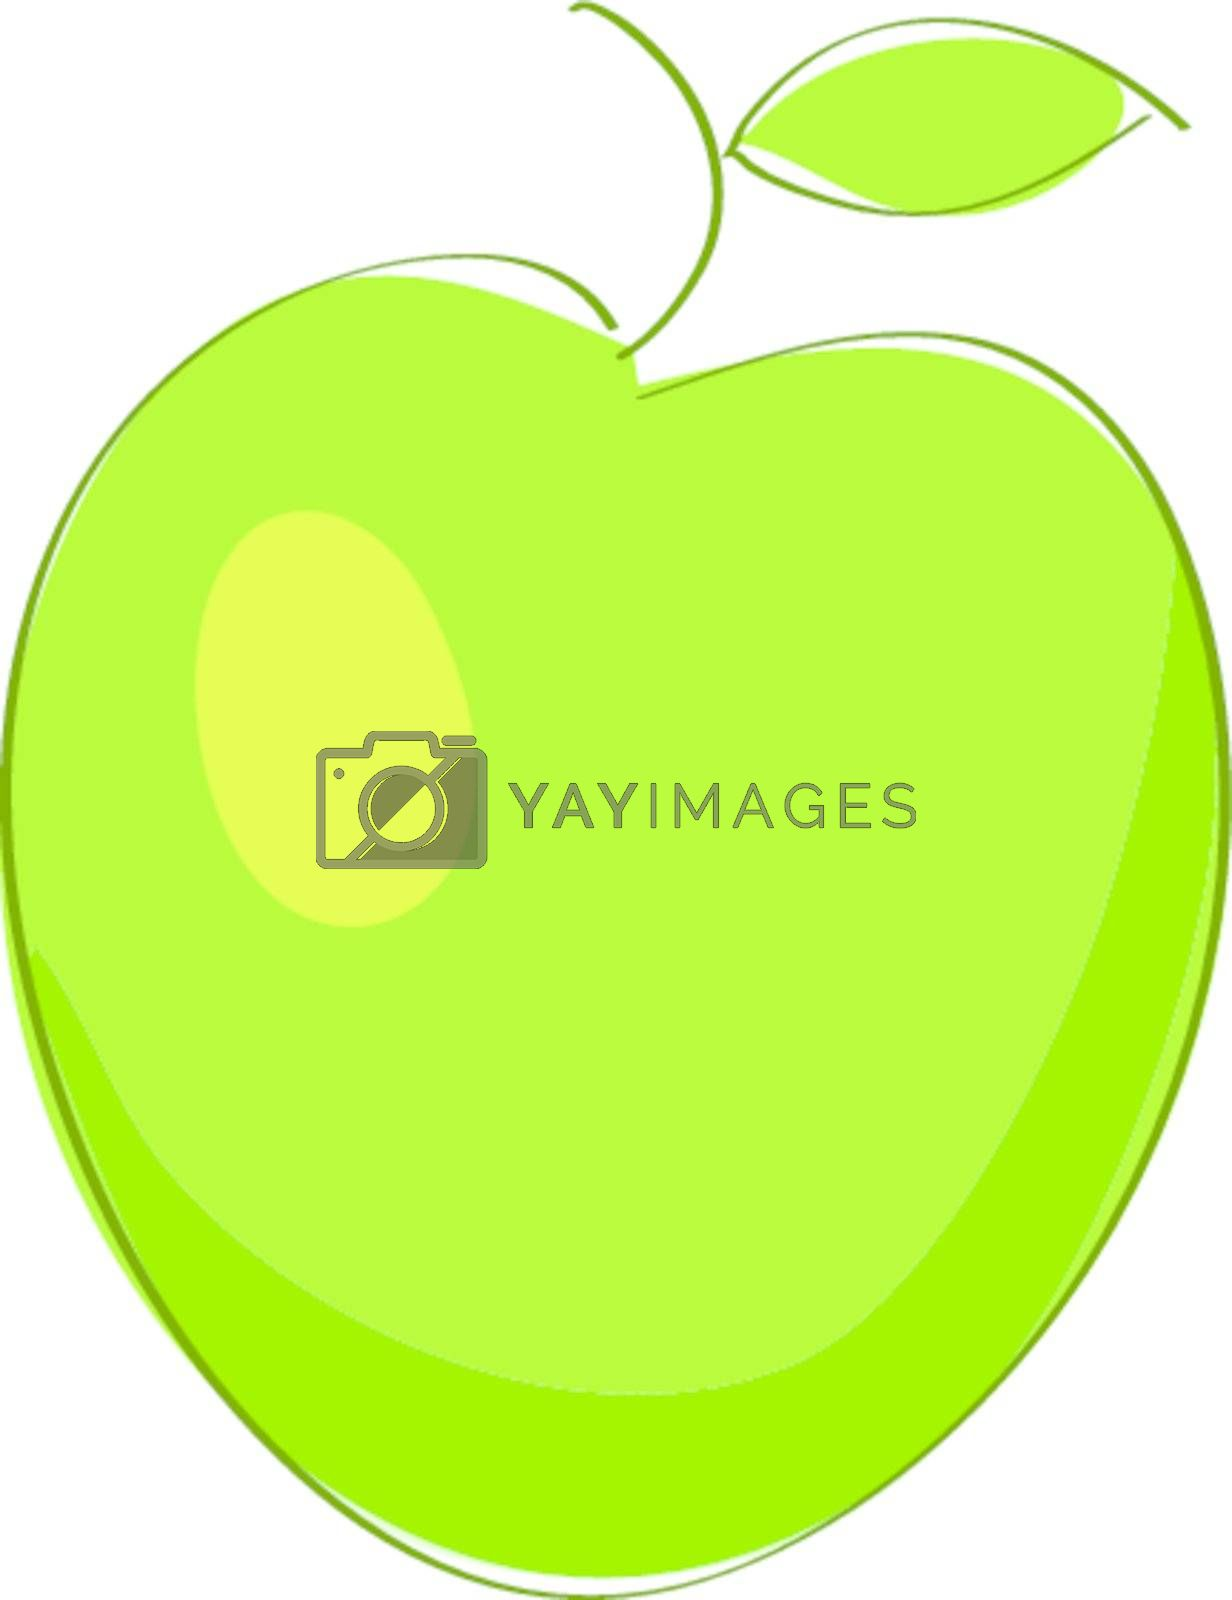 Illustration insulated object green apple on white background